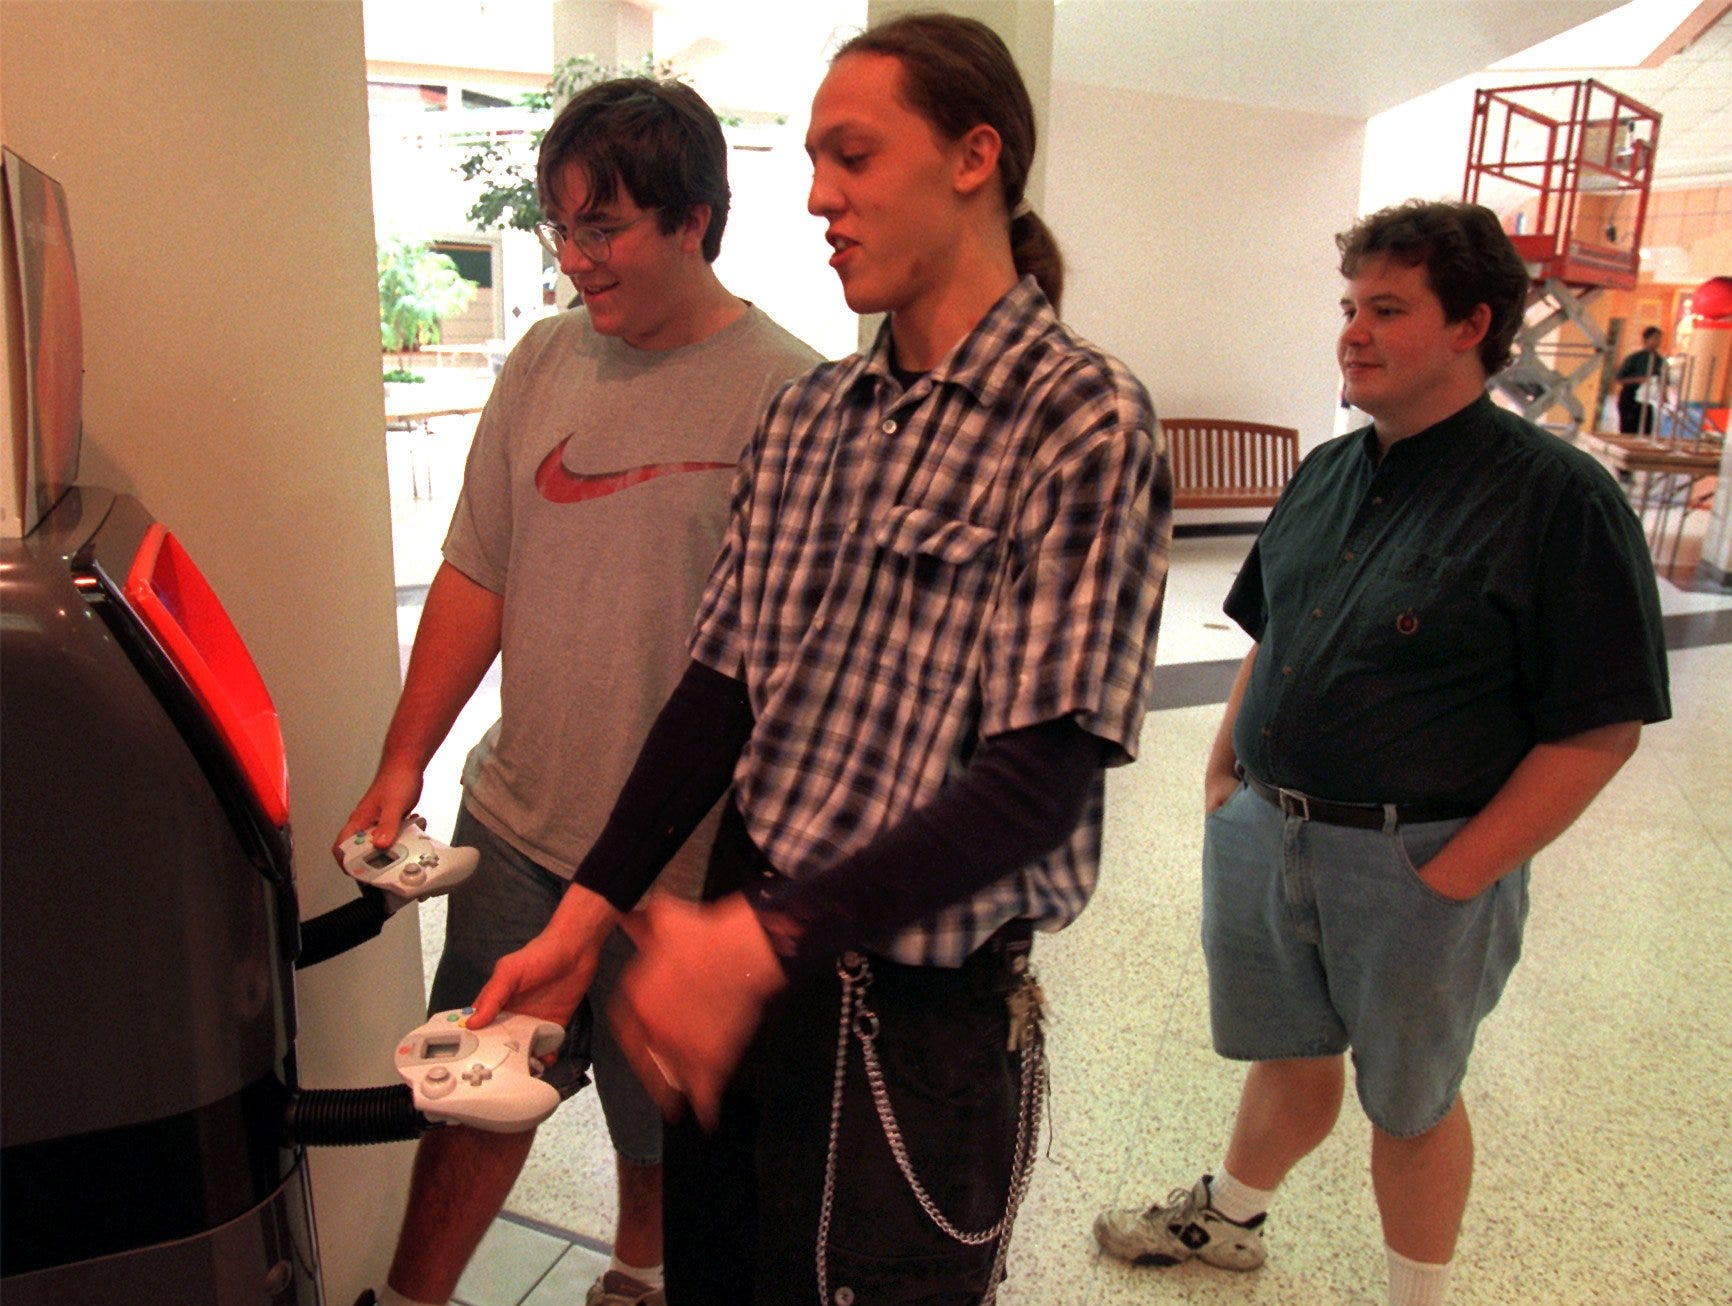 Matt Olson, left, of West Des Moines, and Matt Ziegenfuss, in plaid shirt, play a new Sega Dreamcast boxing game at Babbage's in the lower level of Valley West Mall. The two are both 18-years-old. At right, watching the action on the monitor, is Kevin Cunningham of Des Moines. Shot on Sept. 1, 1999.